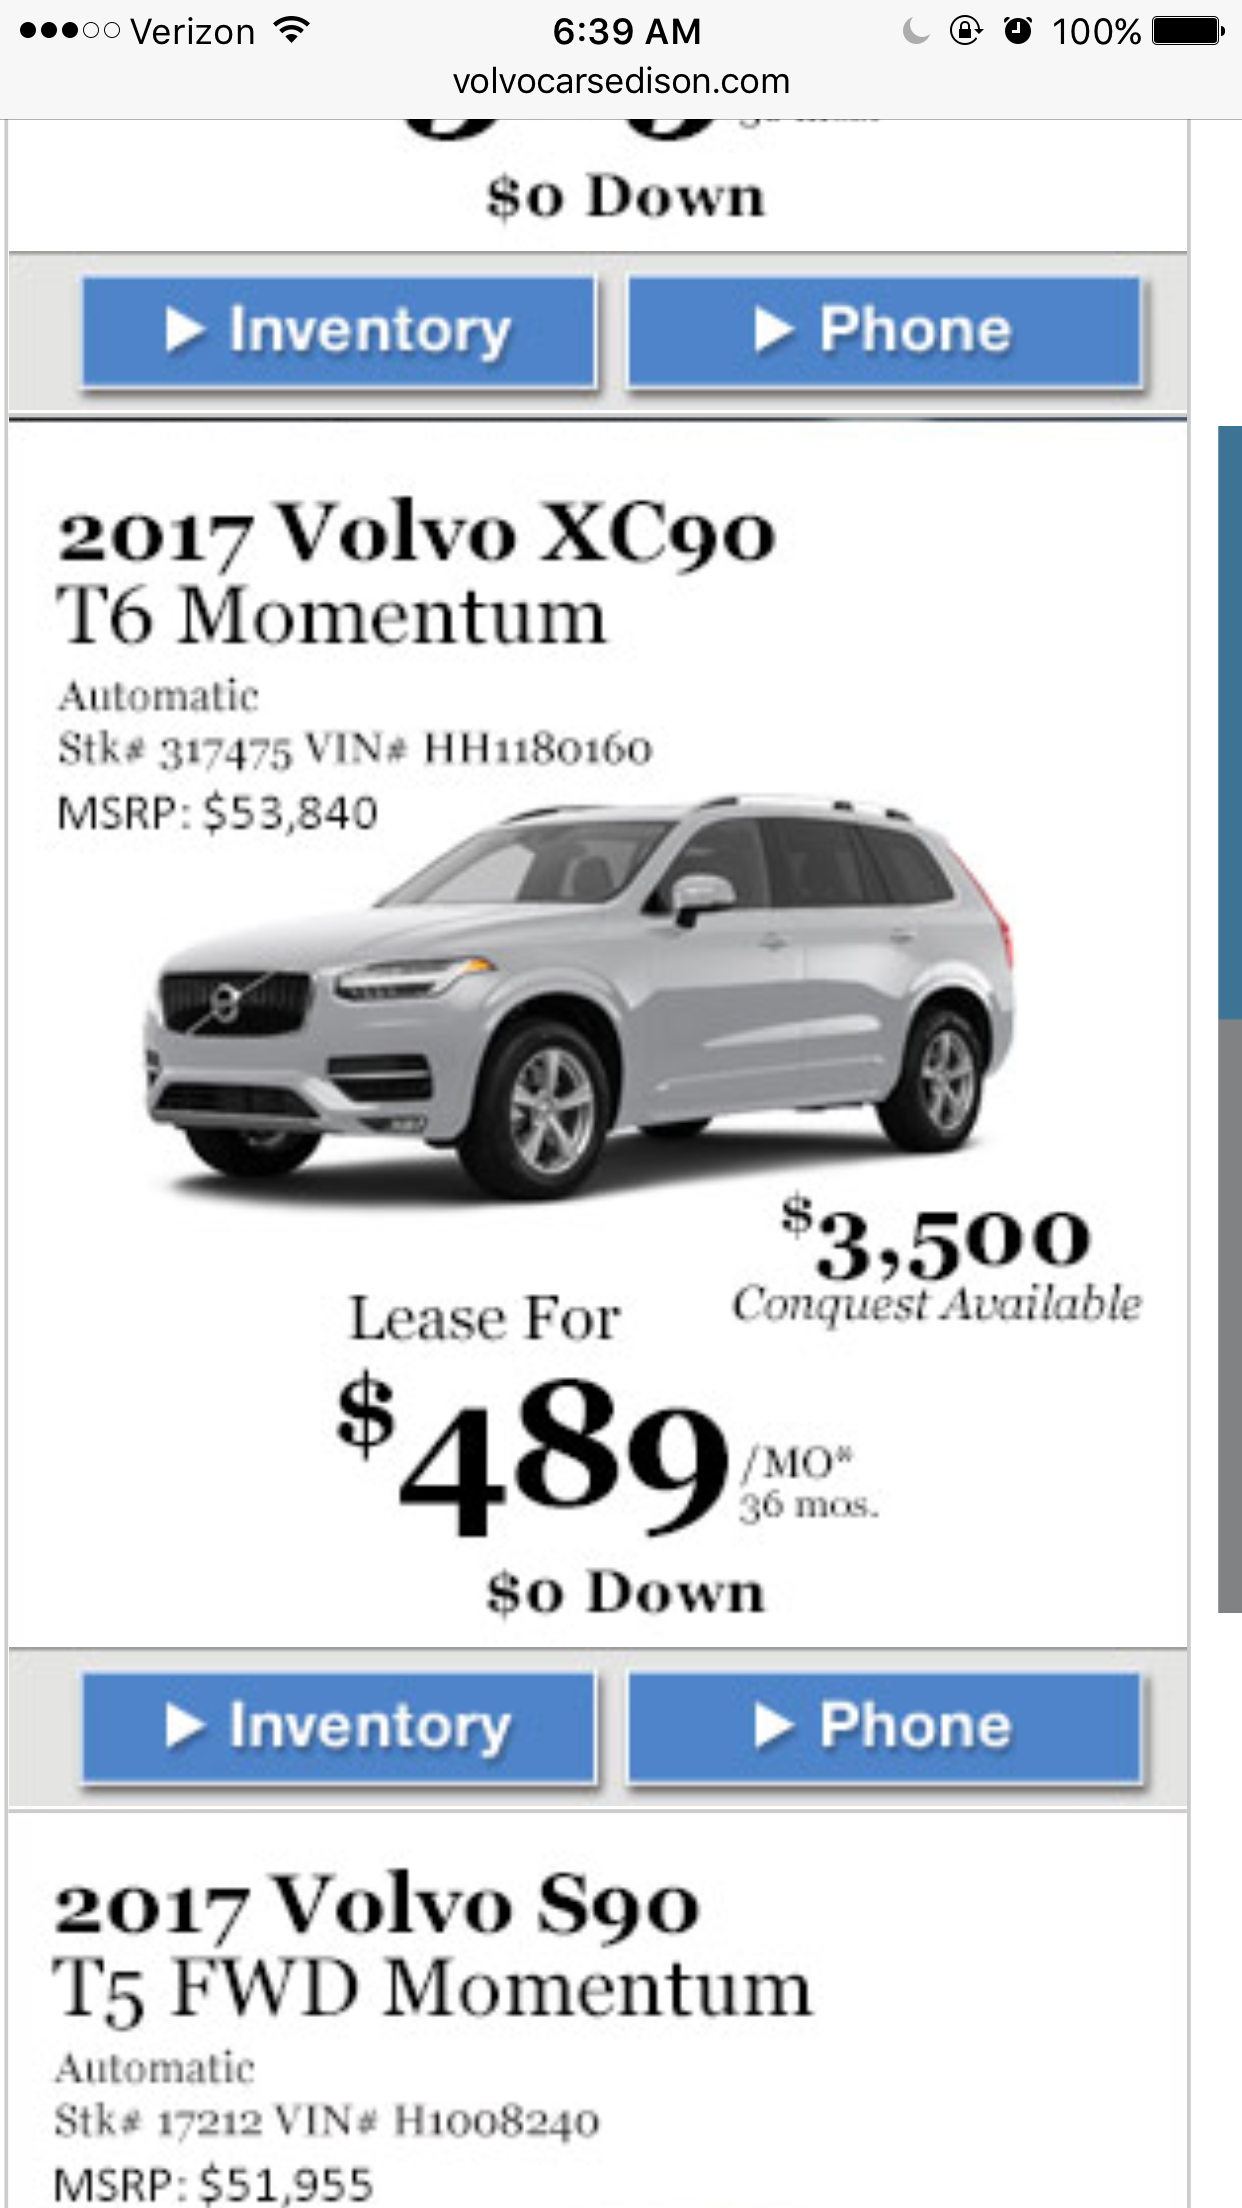 2017 volvo xc90 lease deals and prices page 27 car forums at. Black Bedroom Furniture Sets. Home Design Ideas